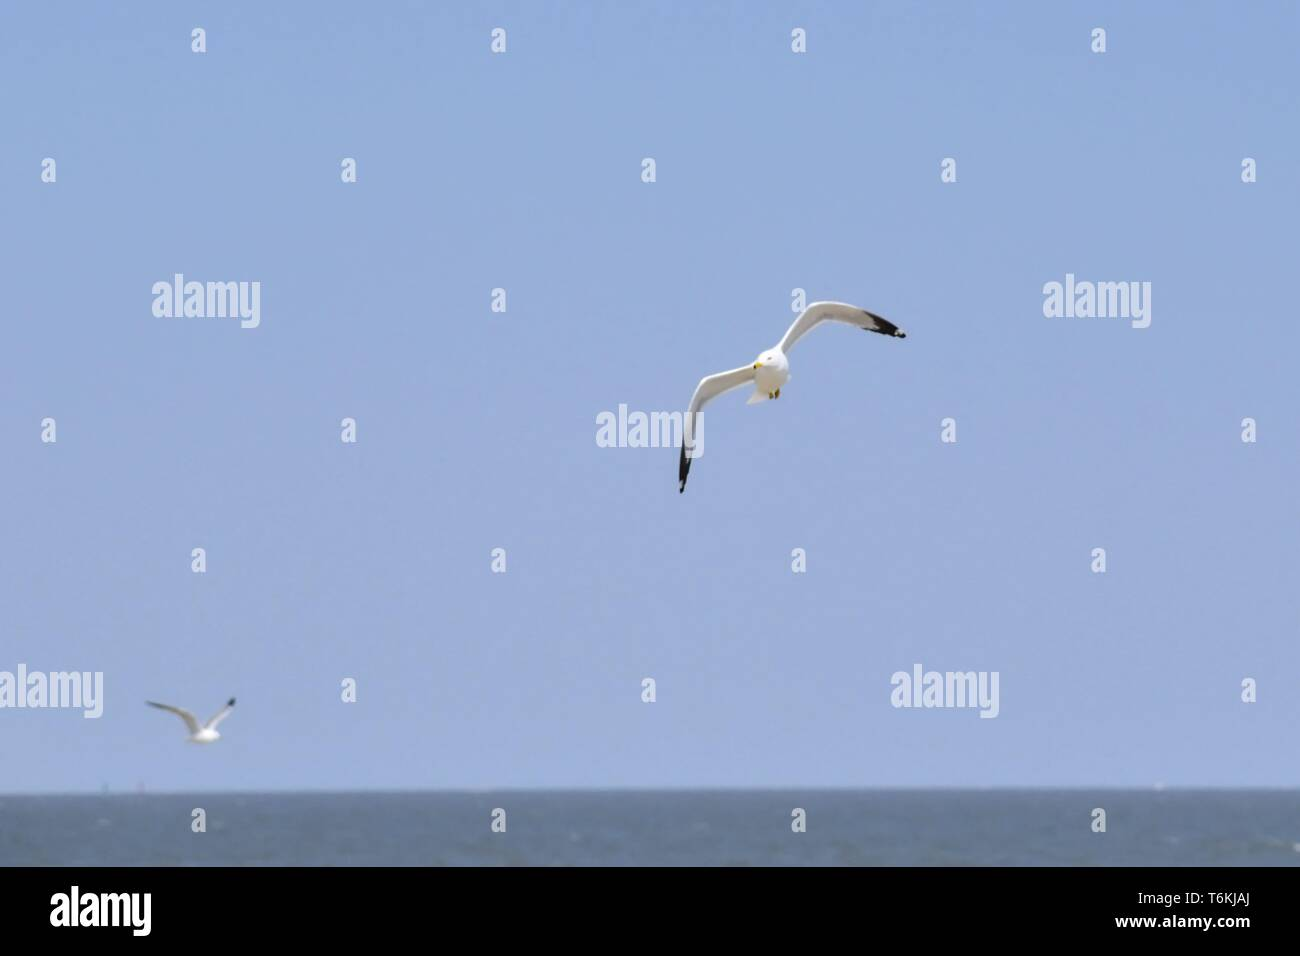 Pair of seagulls flying high over a calm ocean. - Stock Image